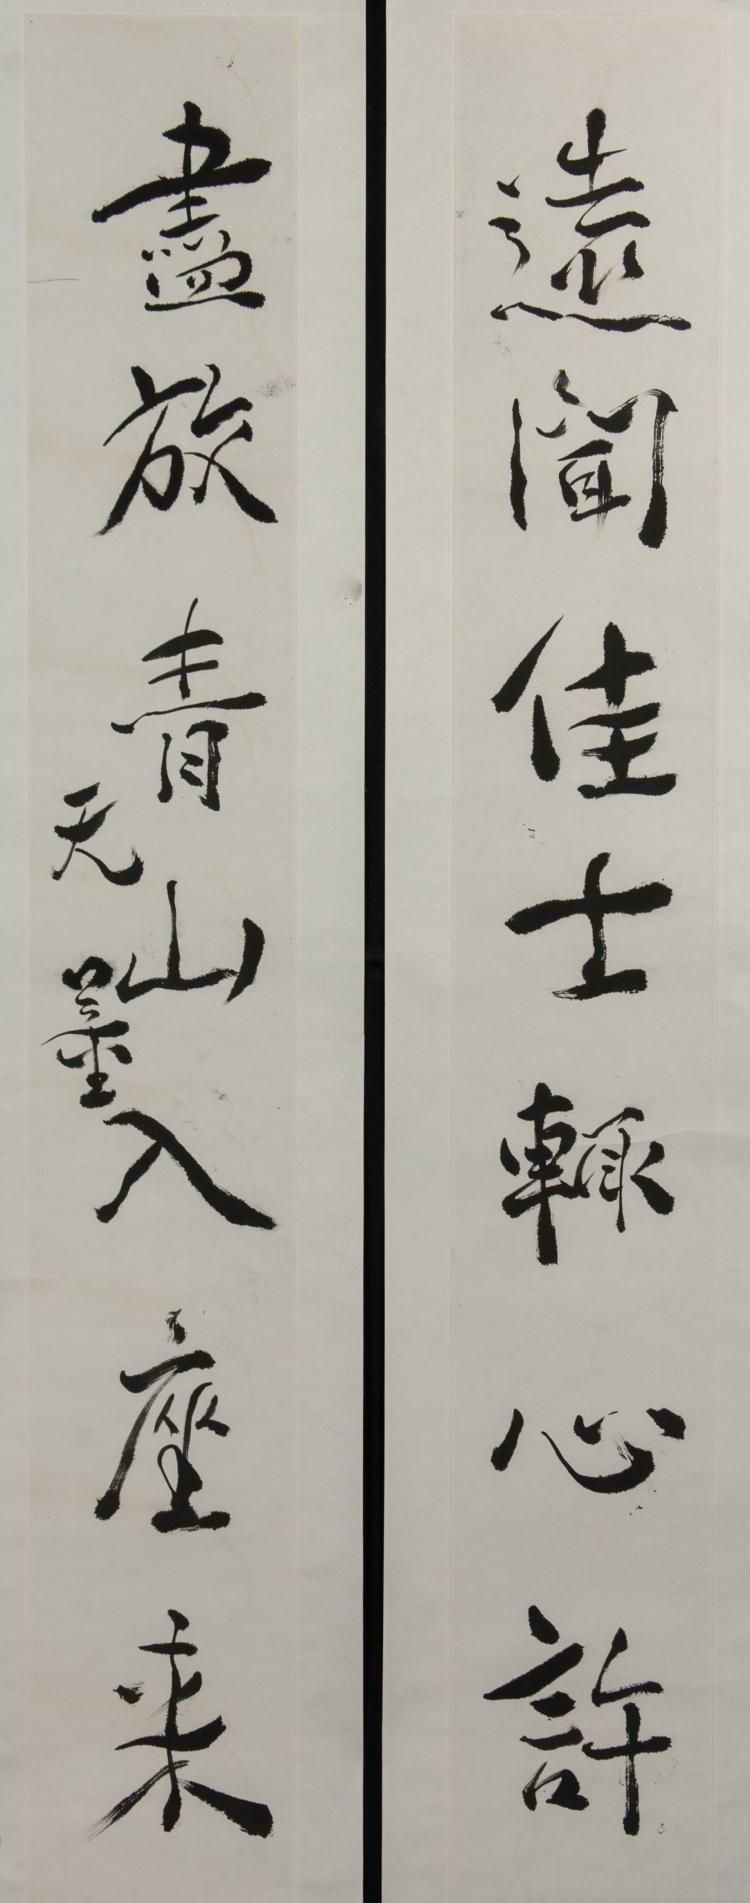 Xie Wuliang (1884-1964) Calligraphy Couplet